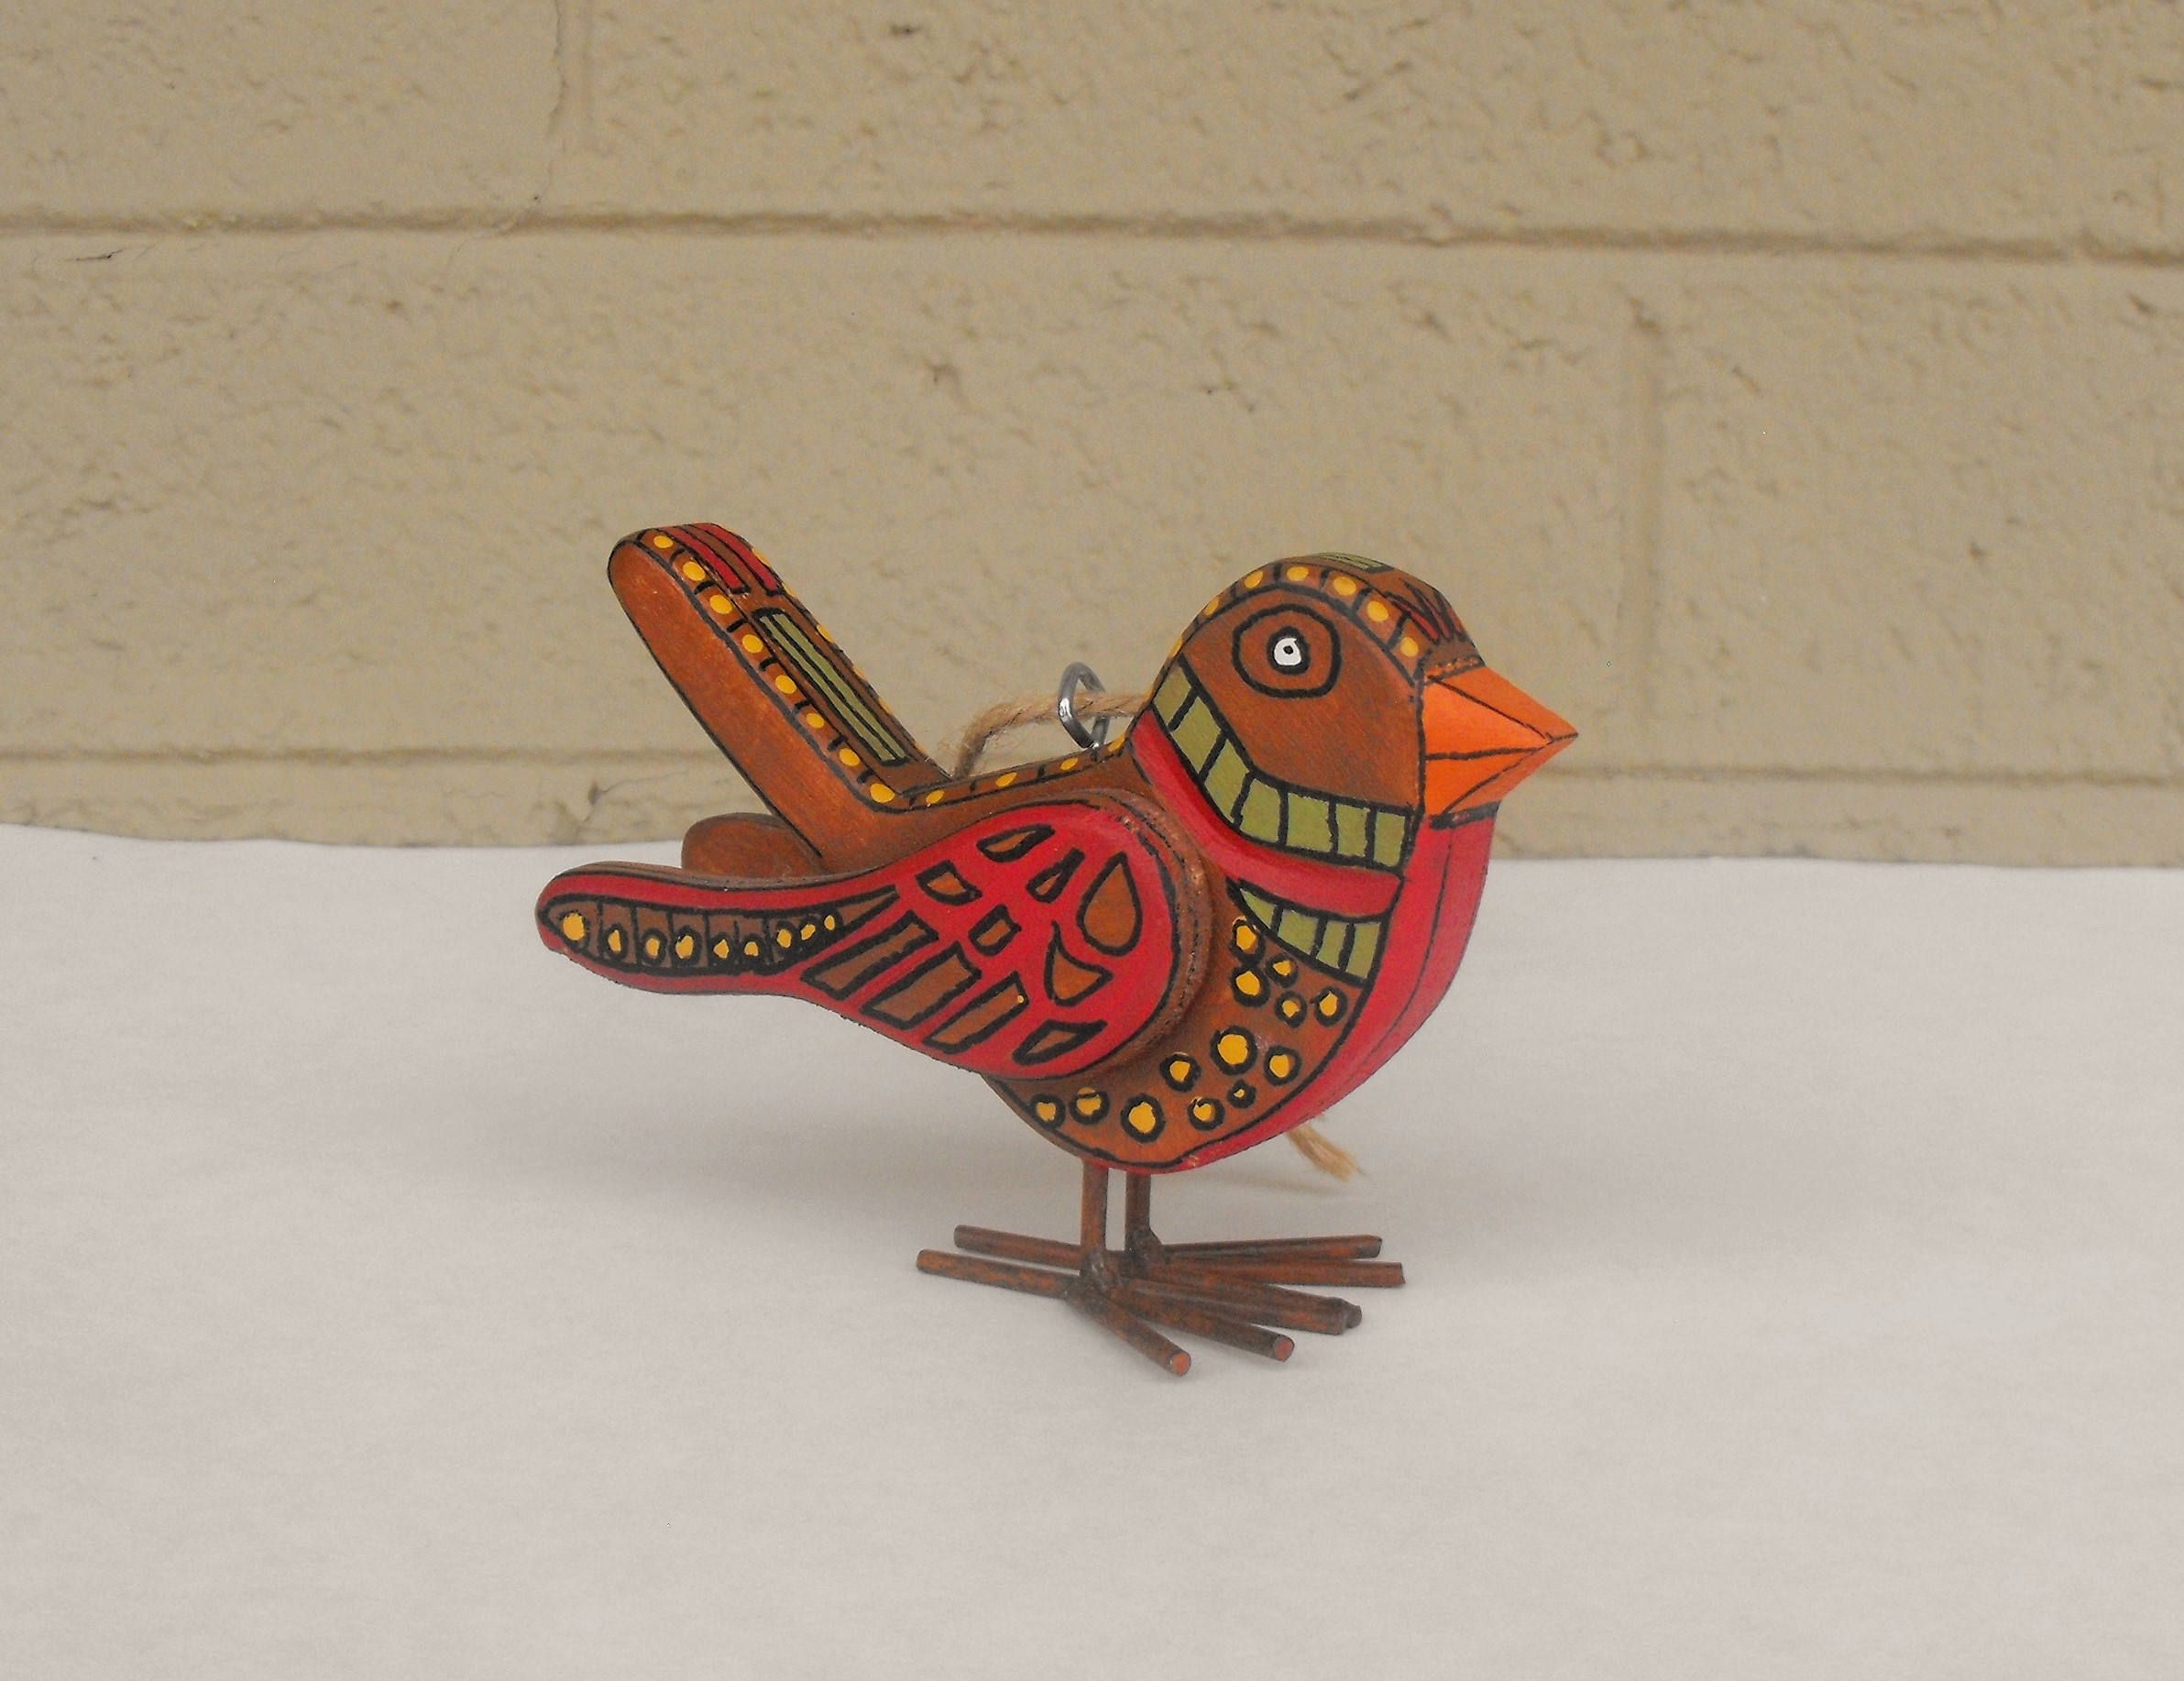 Hand Painted Wooden Bird Christmas Ornament In Folk Art Style Etsy Hand Painted Ornaments Bird Christmas Ornaments Wooden Bird